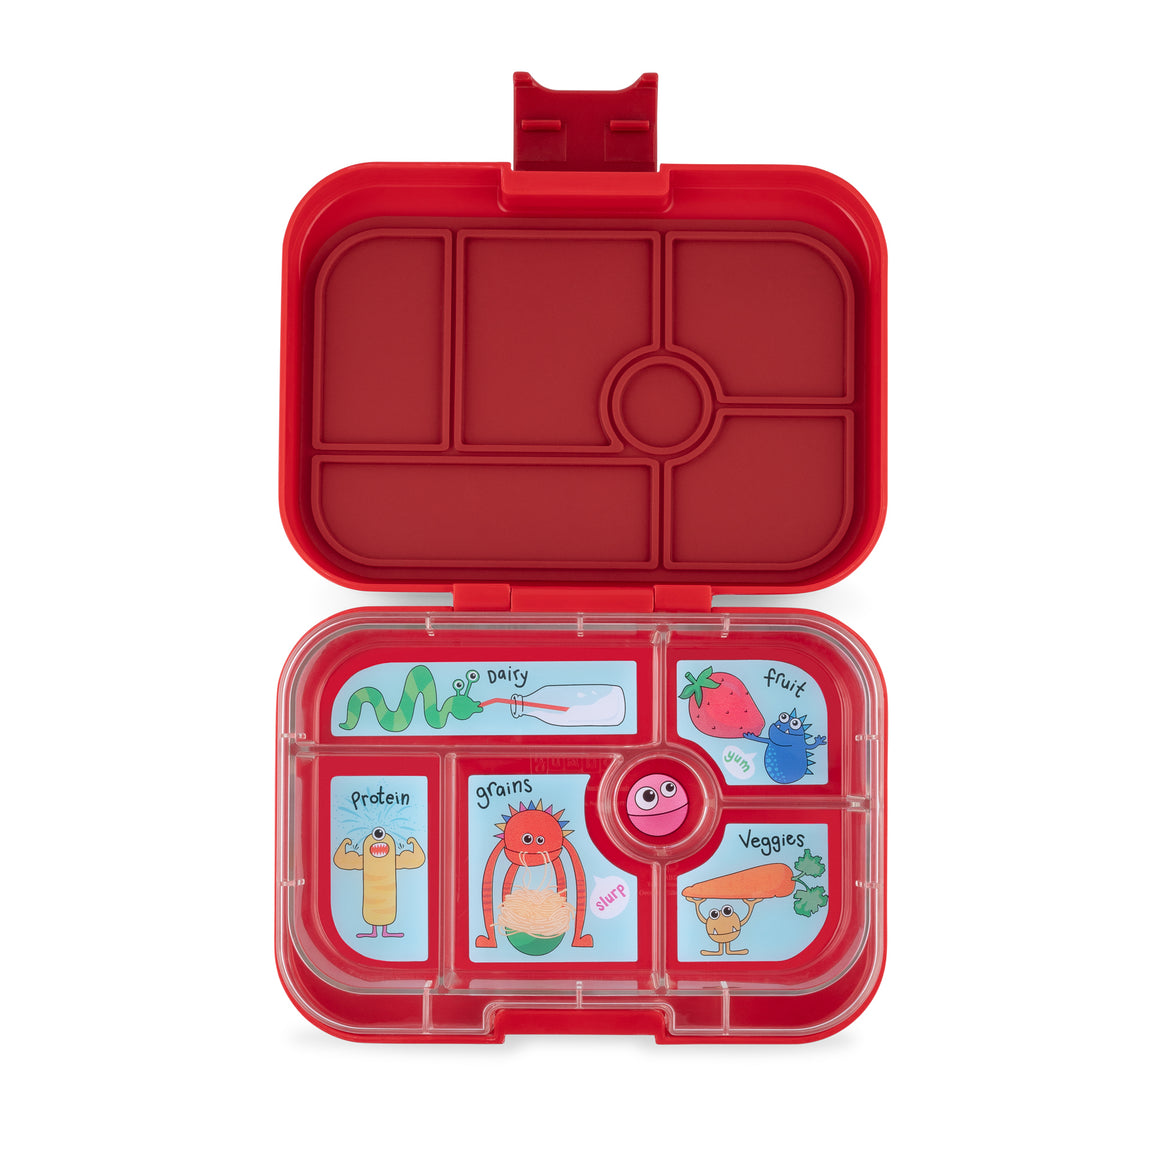 Yumbox Original Bento Lunchbox (6 Compartment) - Wow Red